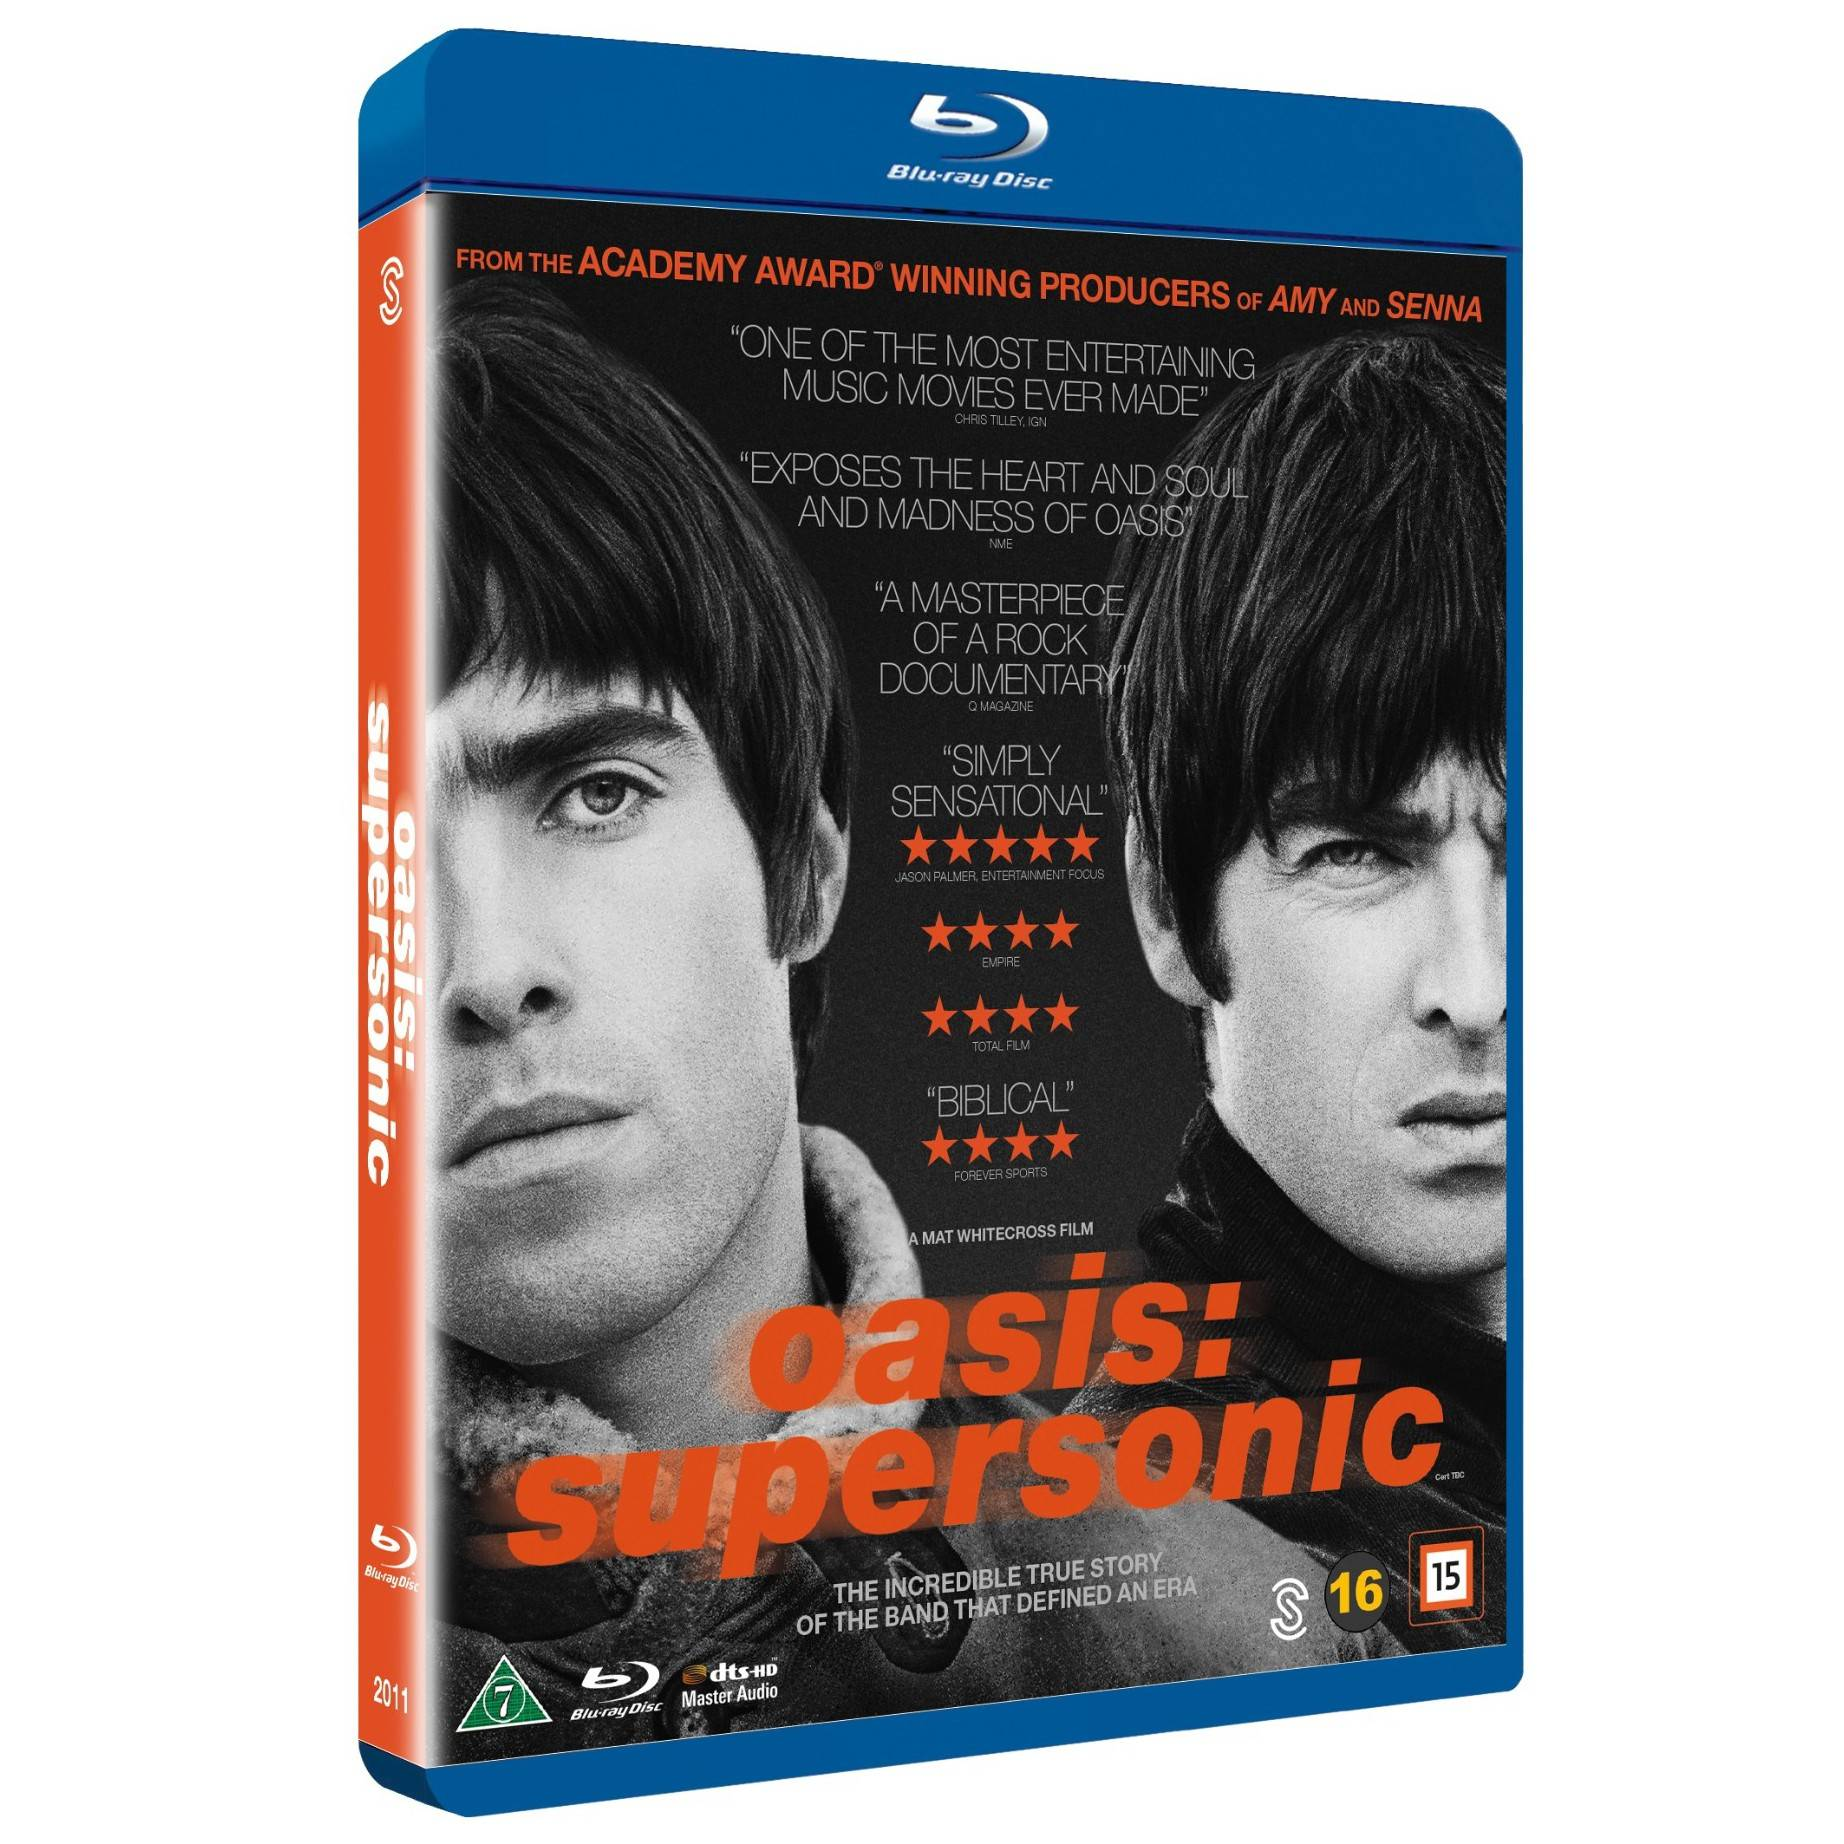 Scanbox Oasis: Supersonic (Blu-ray)